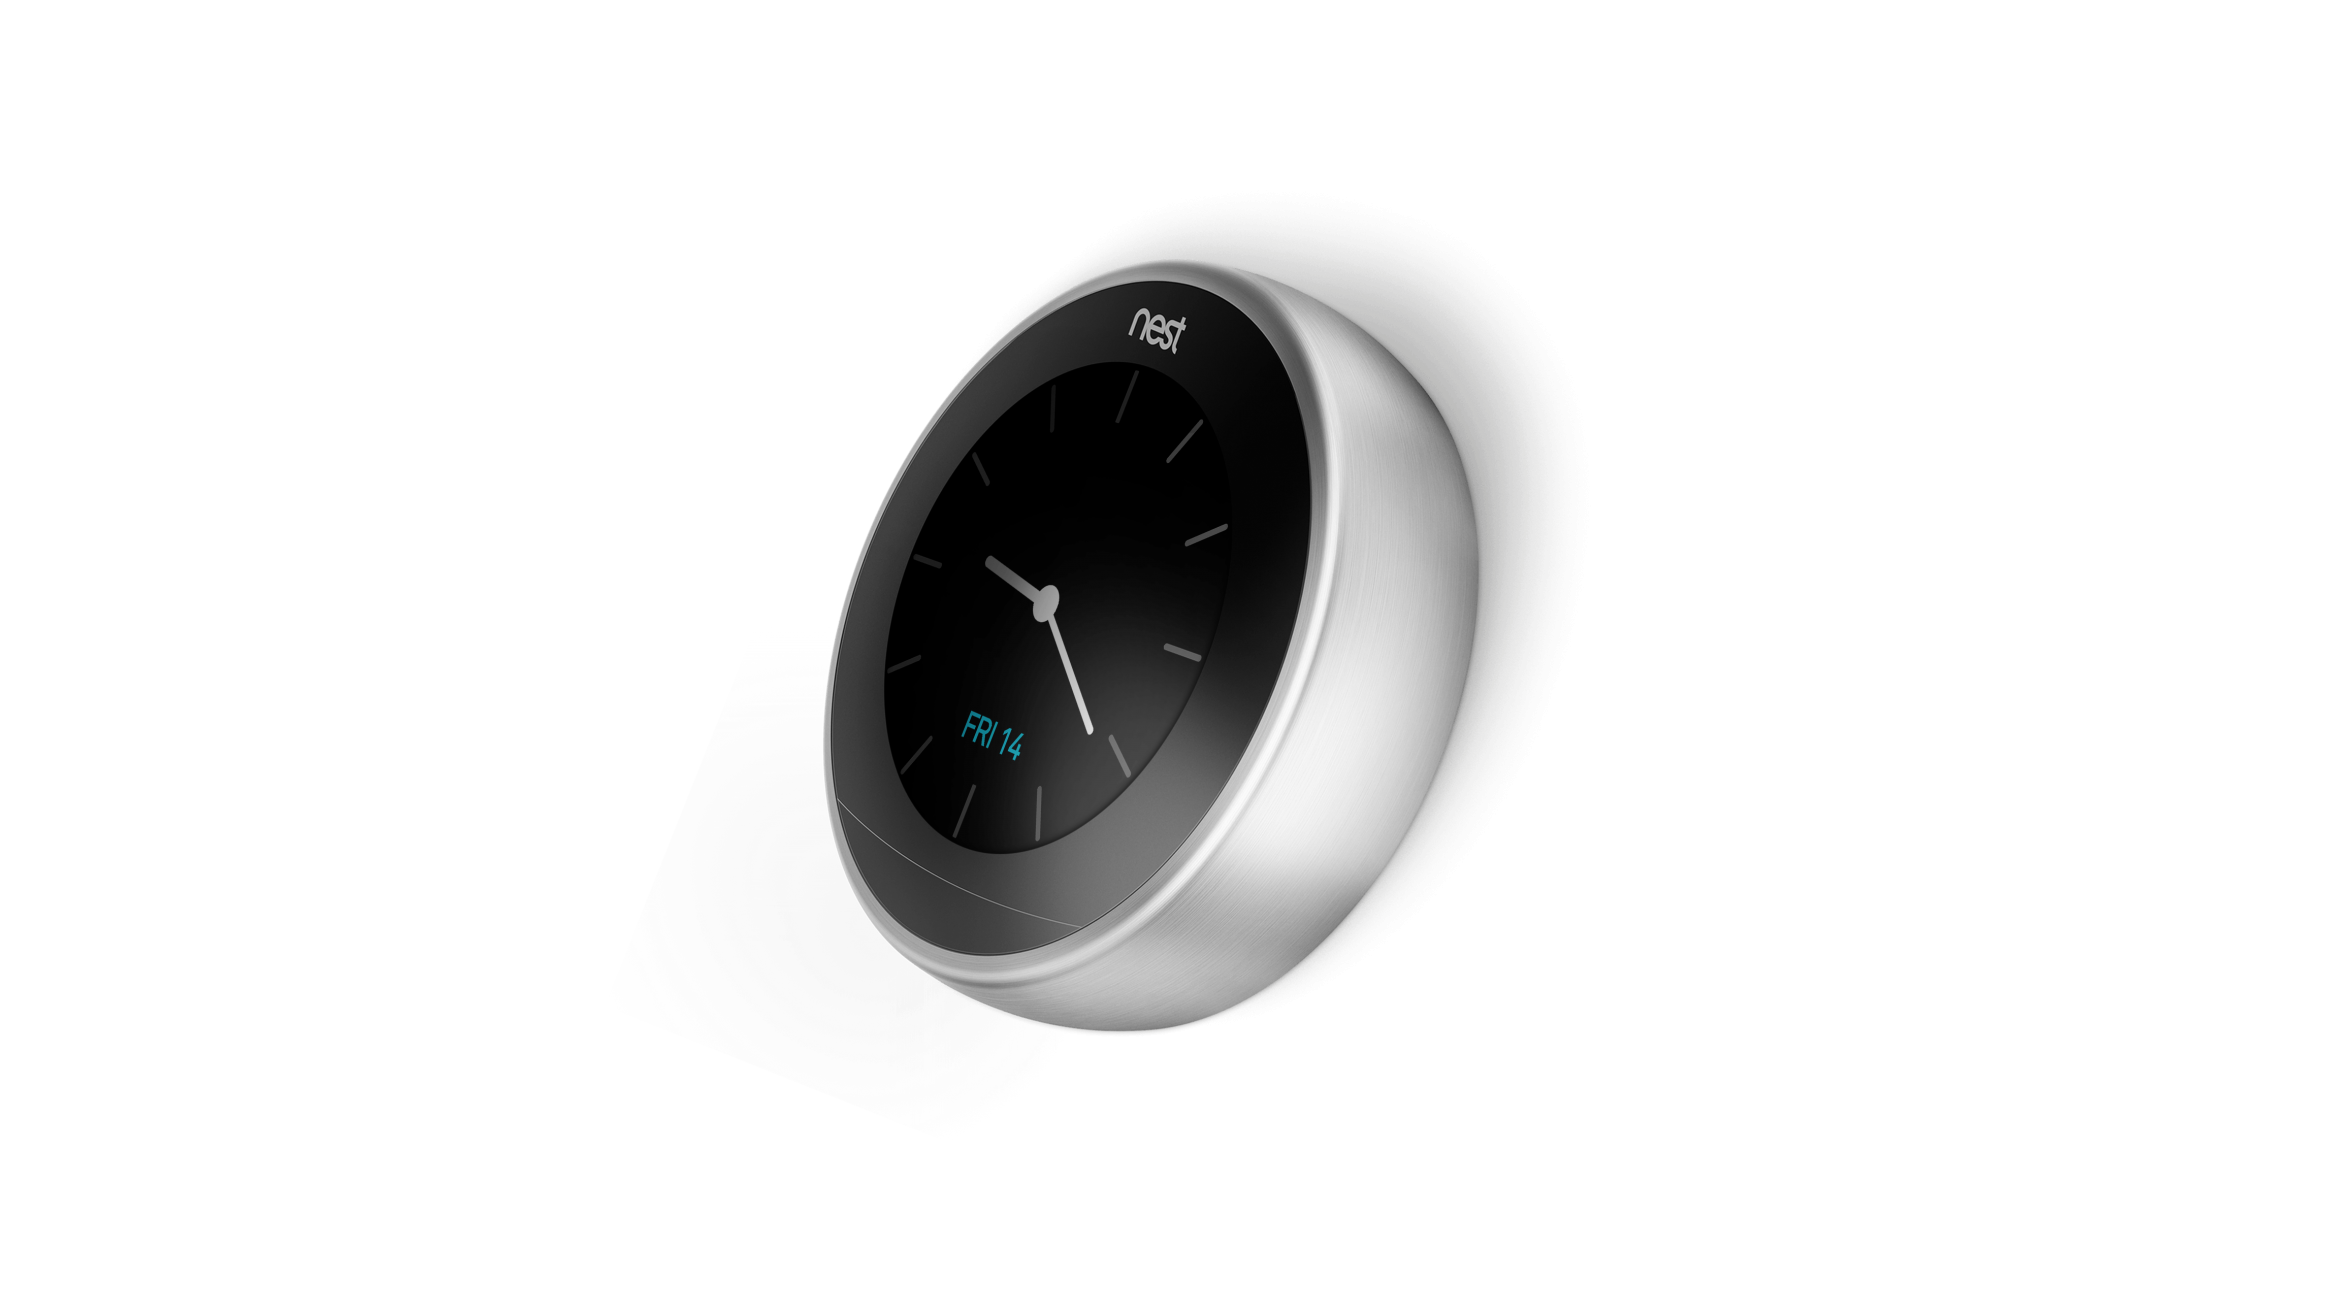 nest_transparent_stainless.png